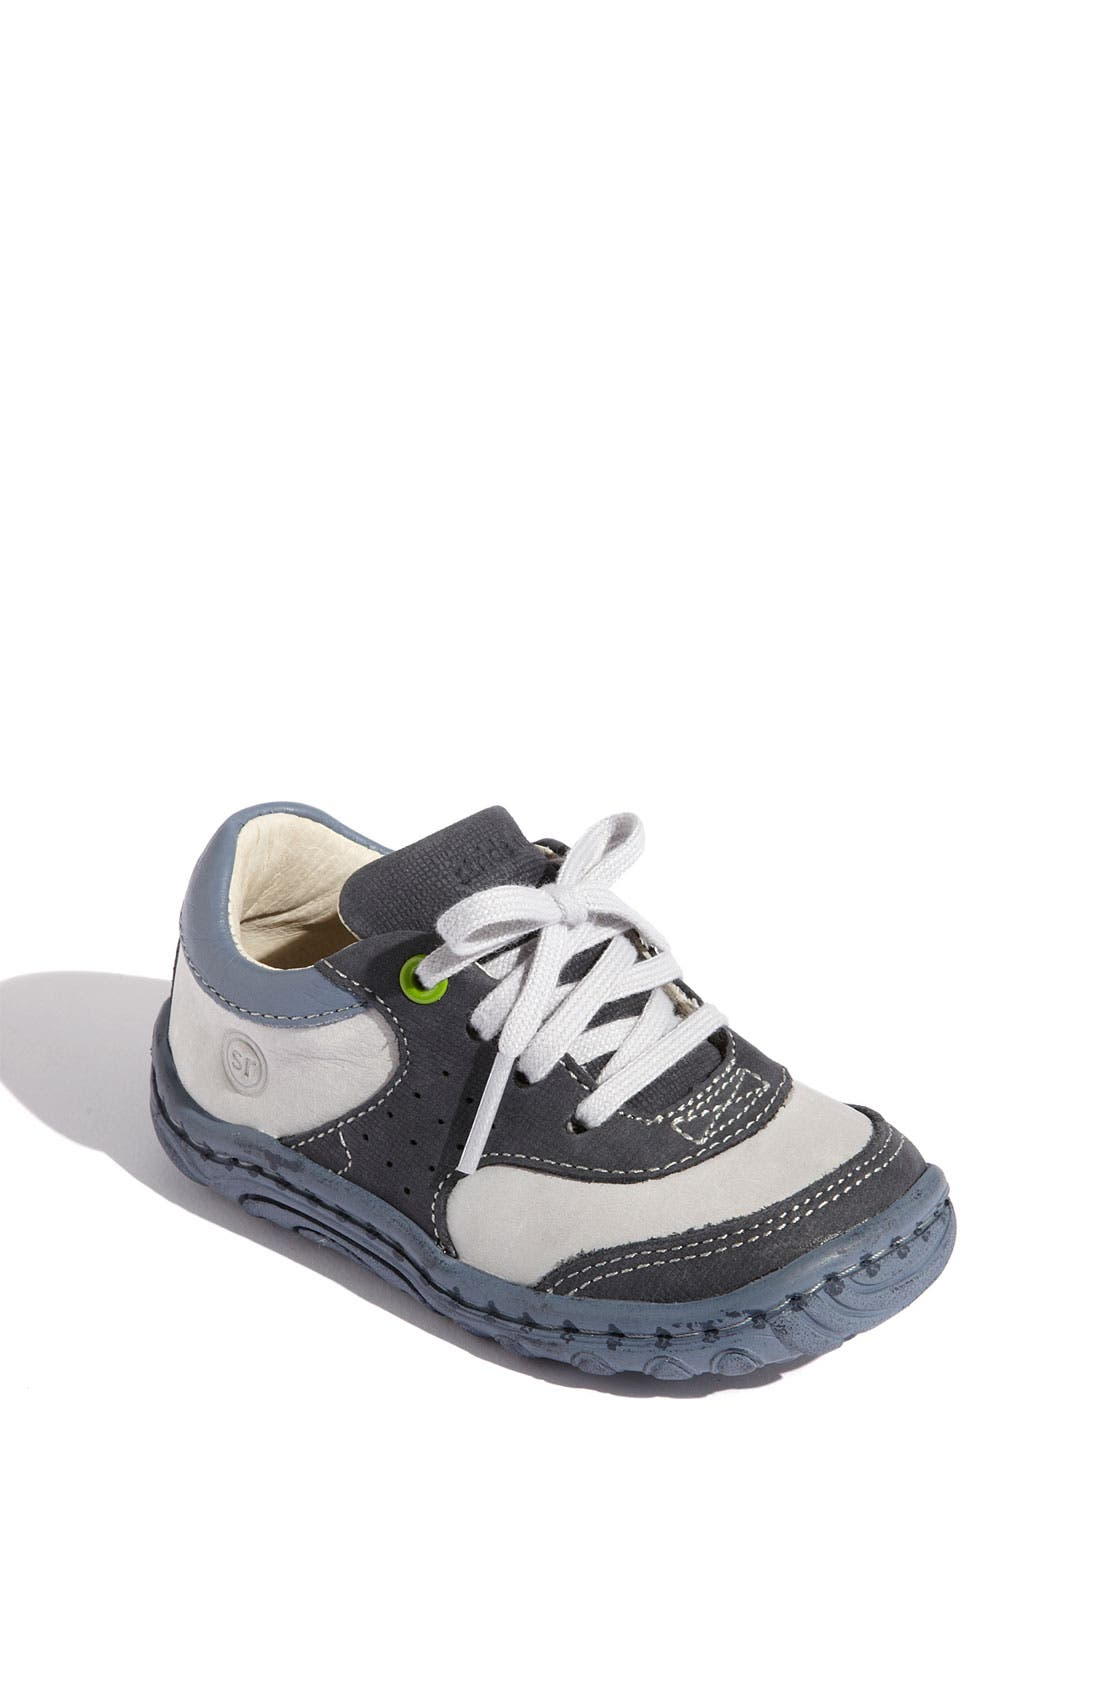 Main Image - Stride Rite 'Charles' Sneaker (Baby, Walker & Toddler)